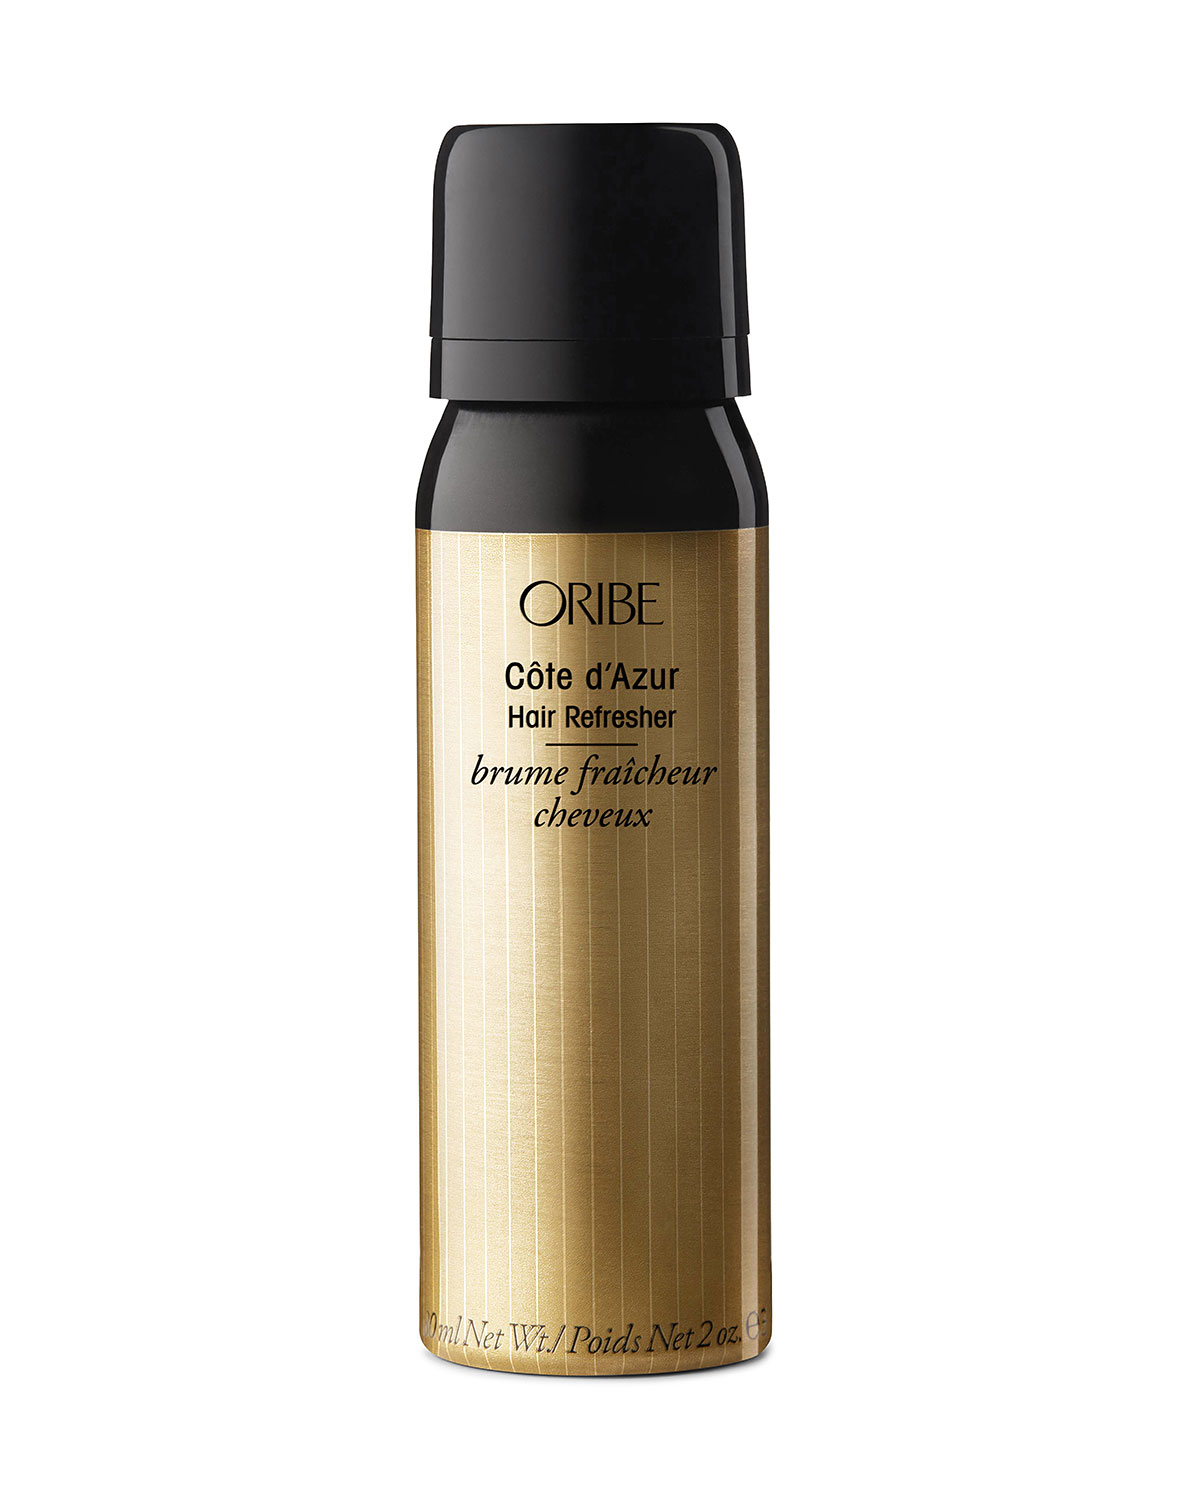 Oribe 2.0 oz. Cote d'Azur Hair Refresher